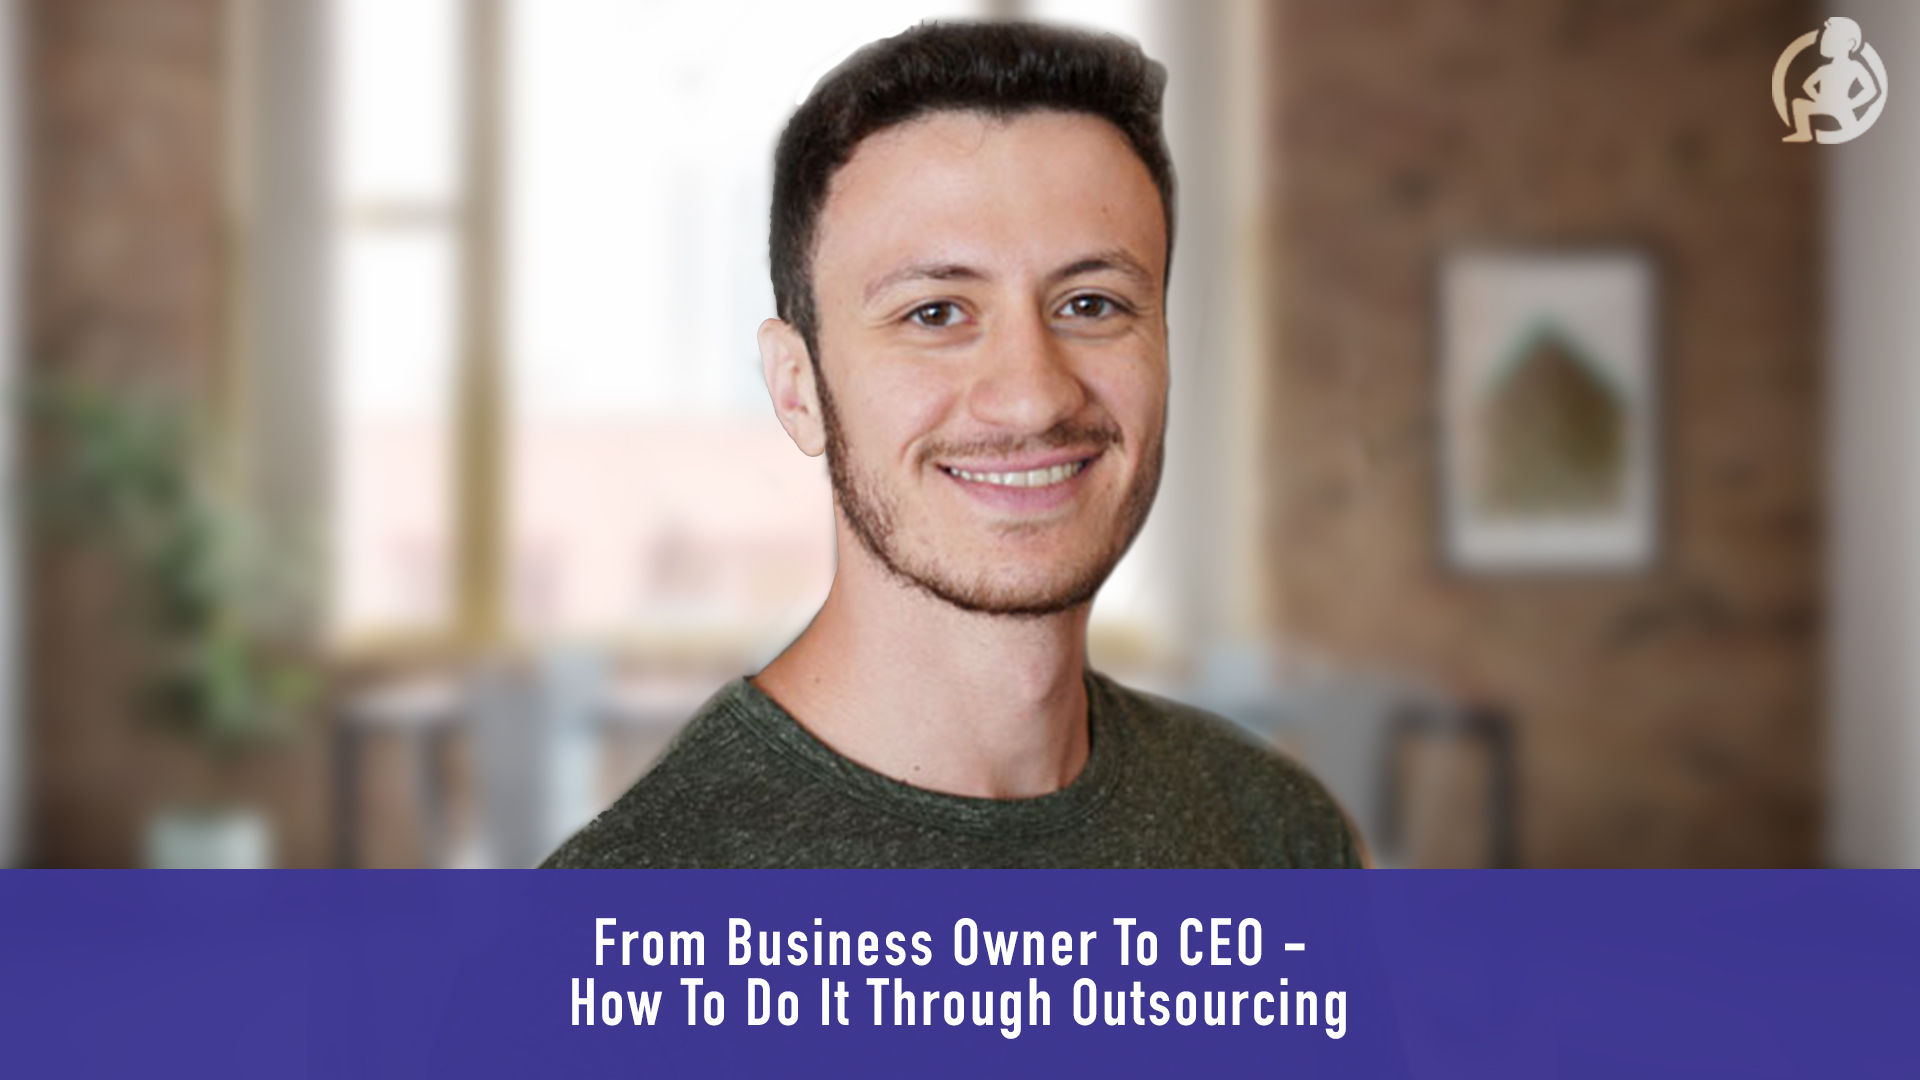 From Business Owner To CEO - How To Do It Through Outsourcing